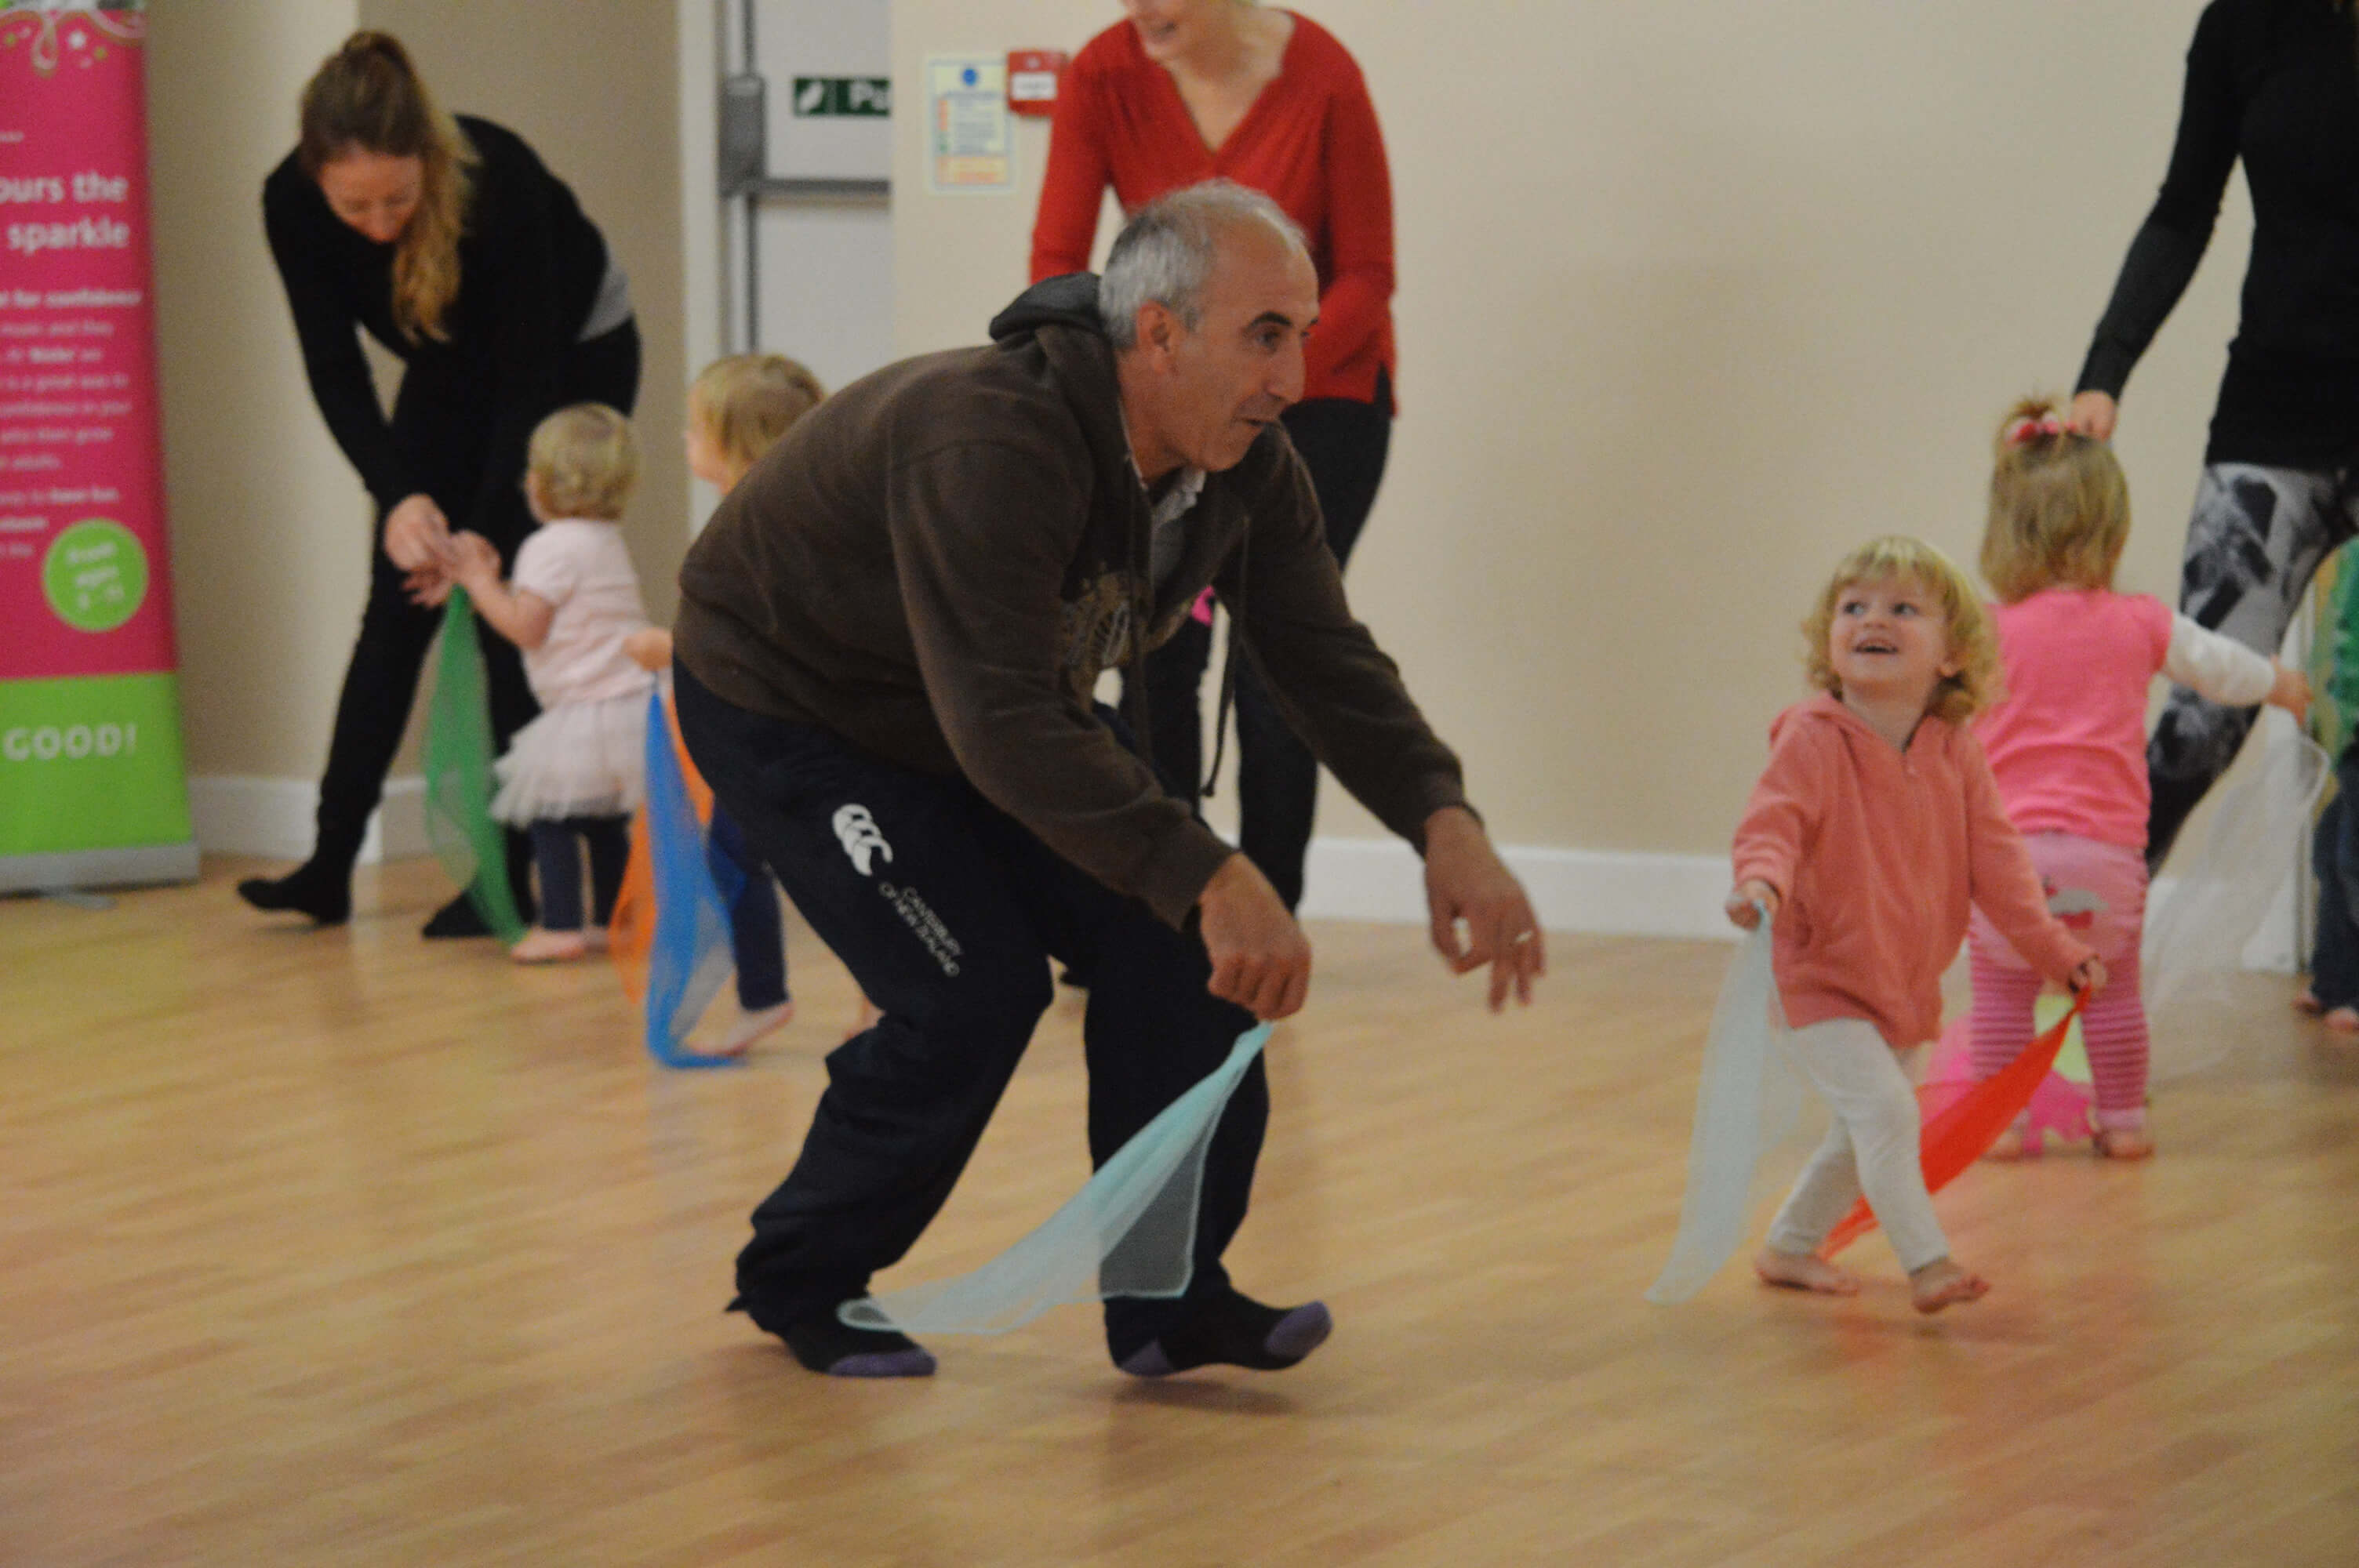 Toddler dance classes - dad with child